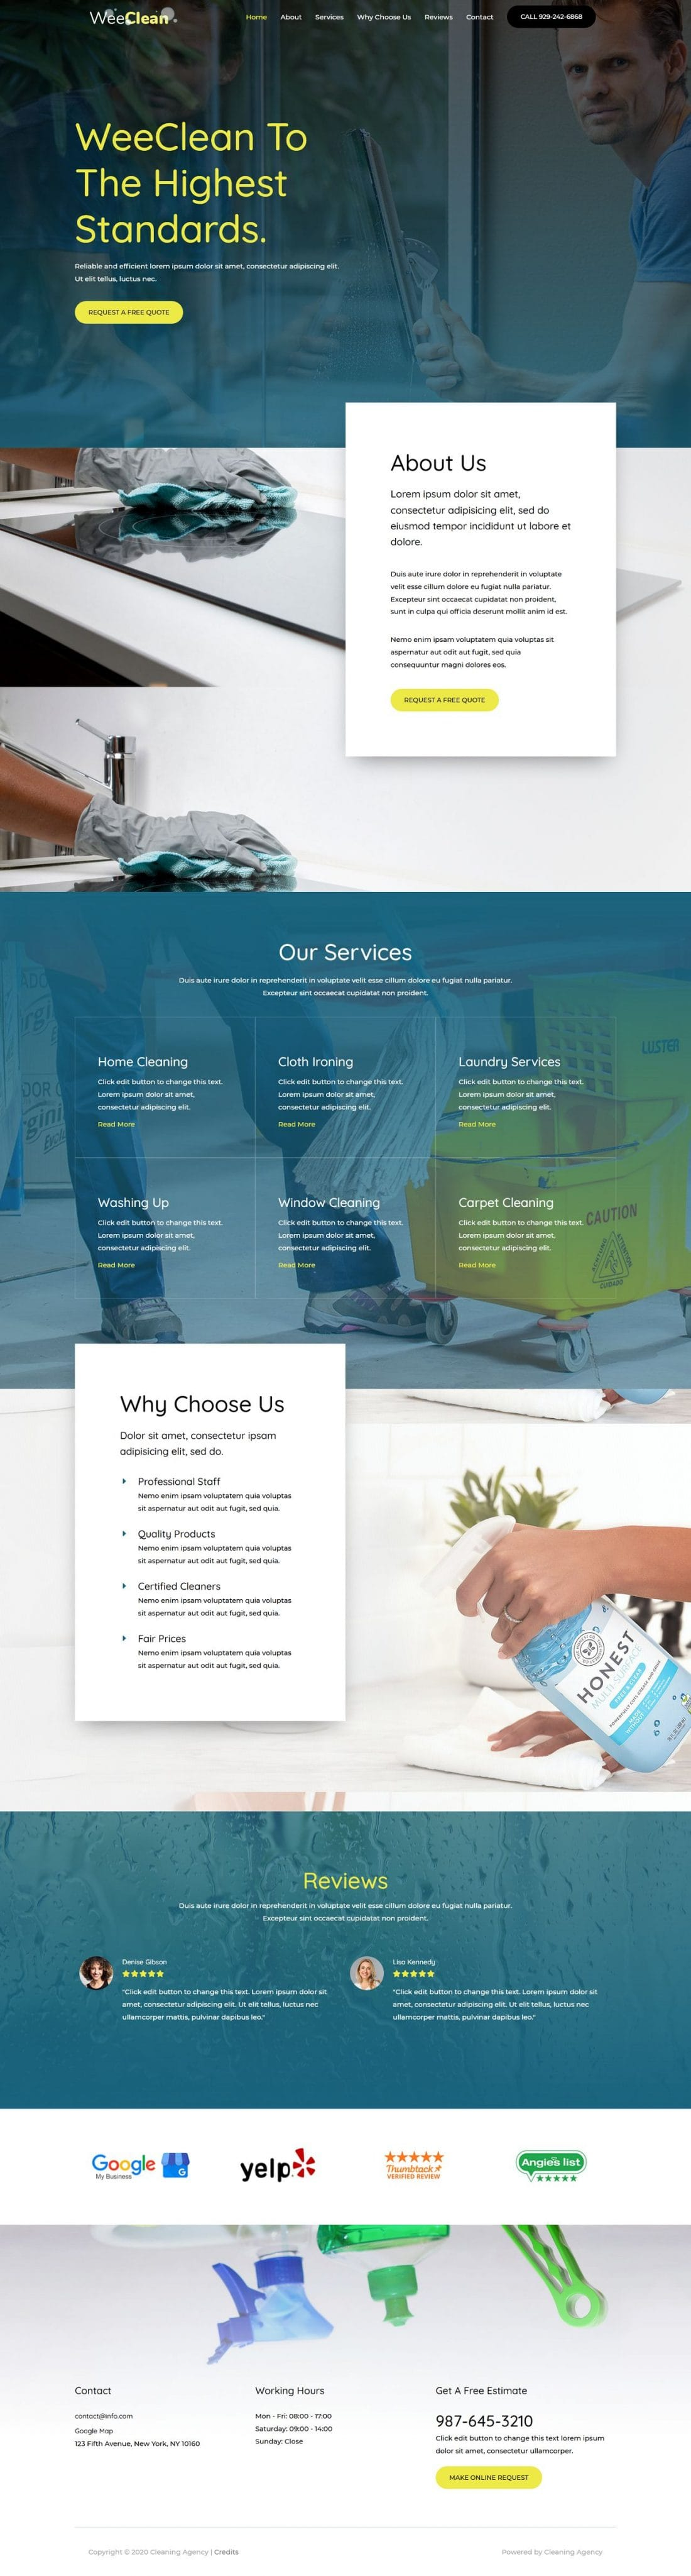 Fagowi.com Website Design Templates For Cleaning Services Agency - Home Page Image